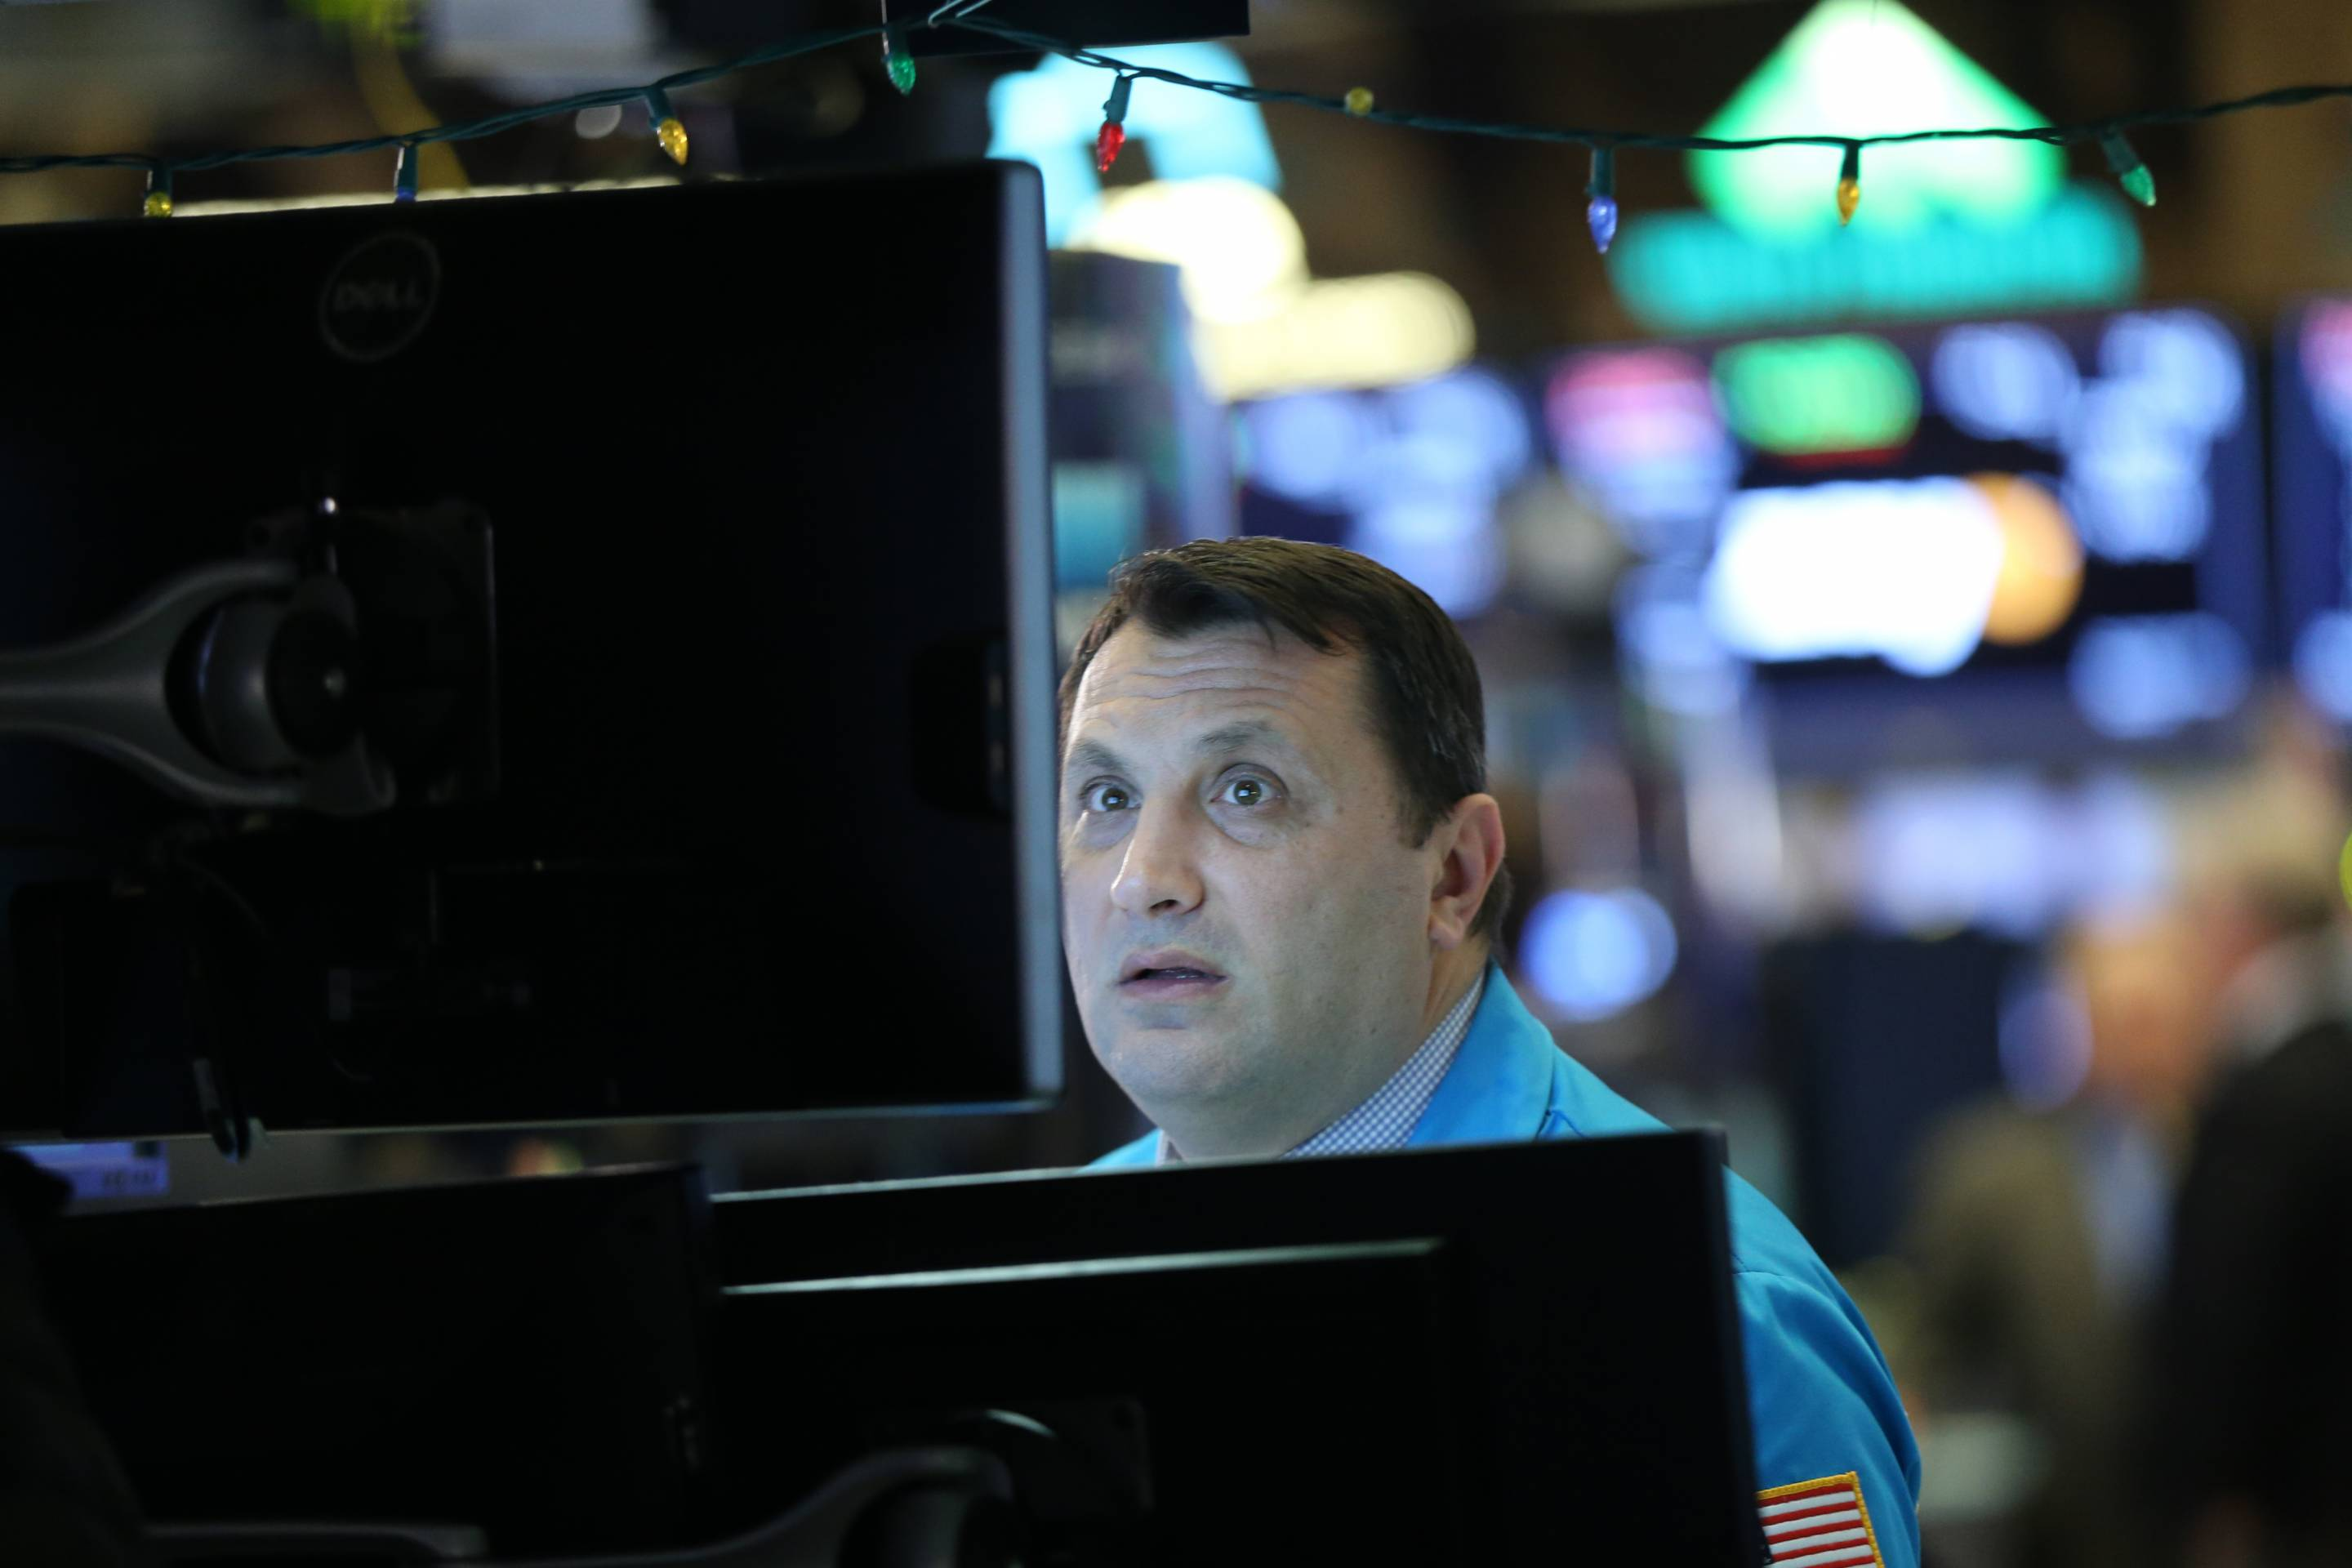 Stocks Dive Nearly 800 Points On U.S. China Trade Fears